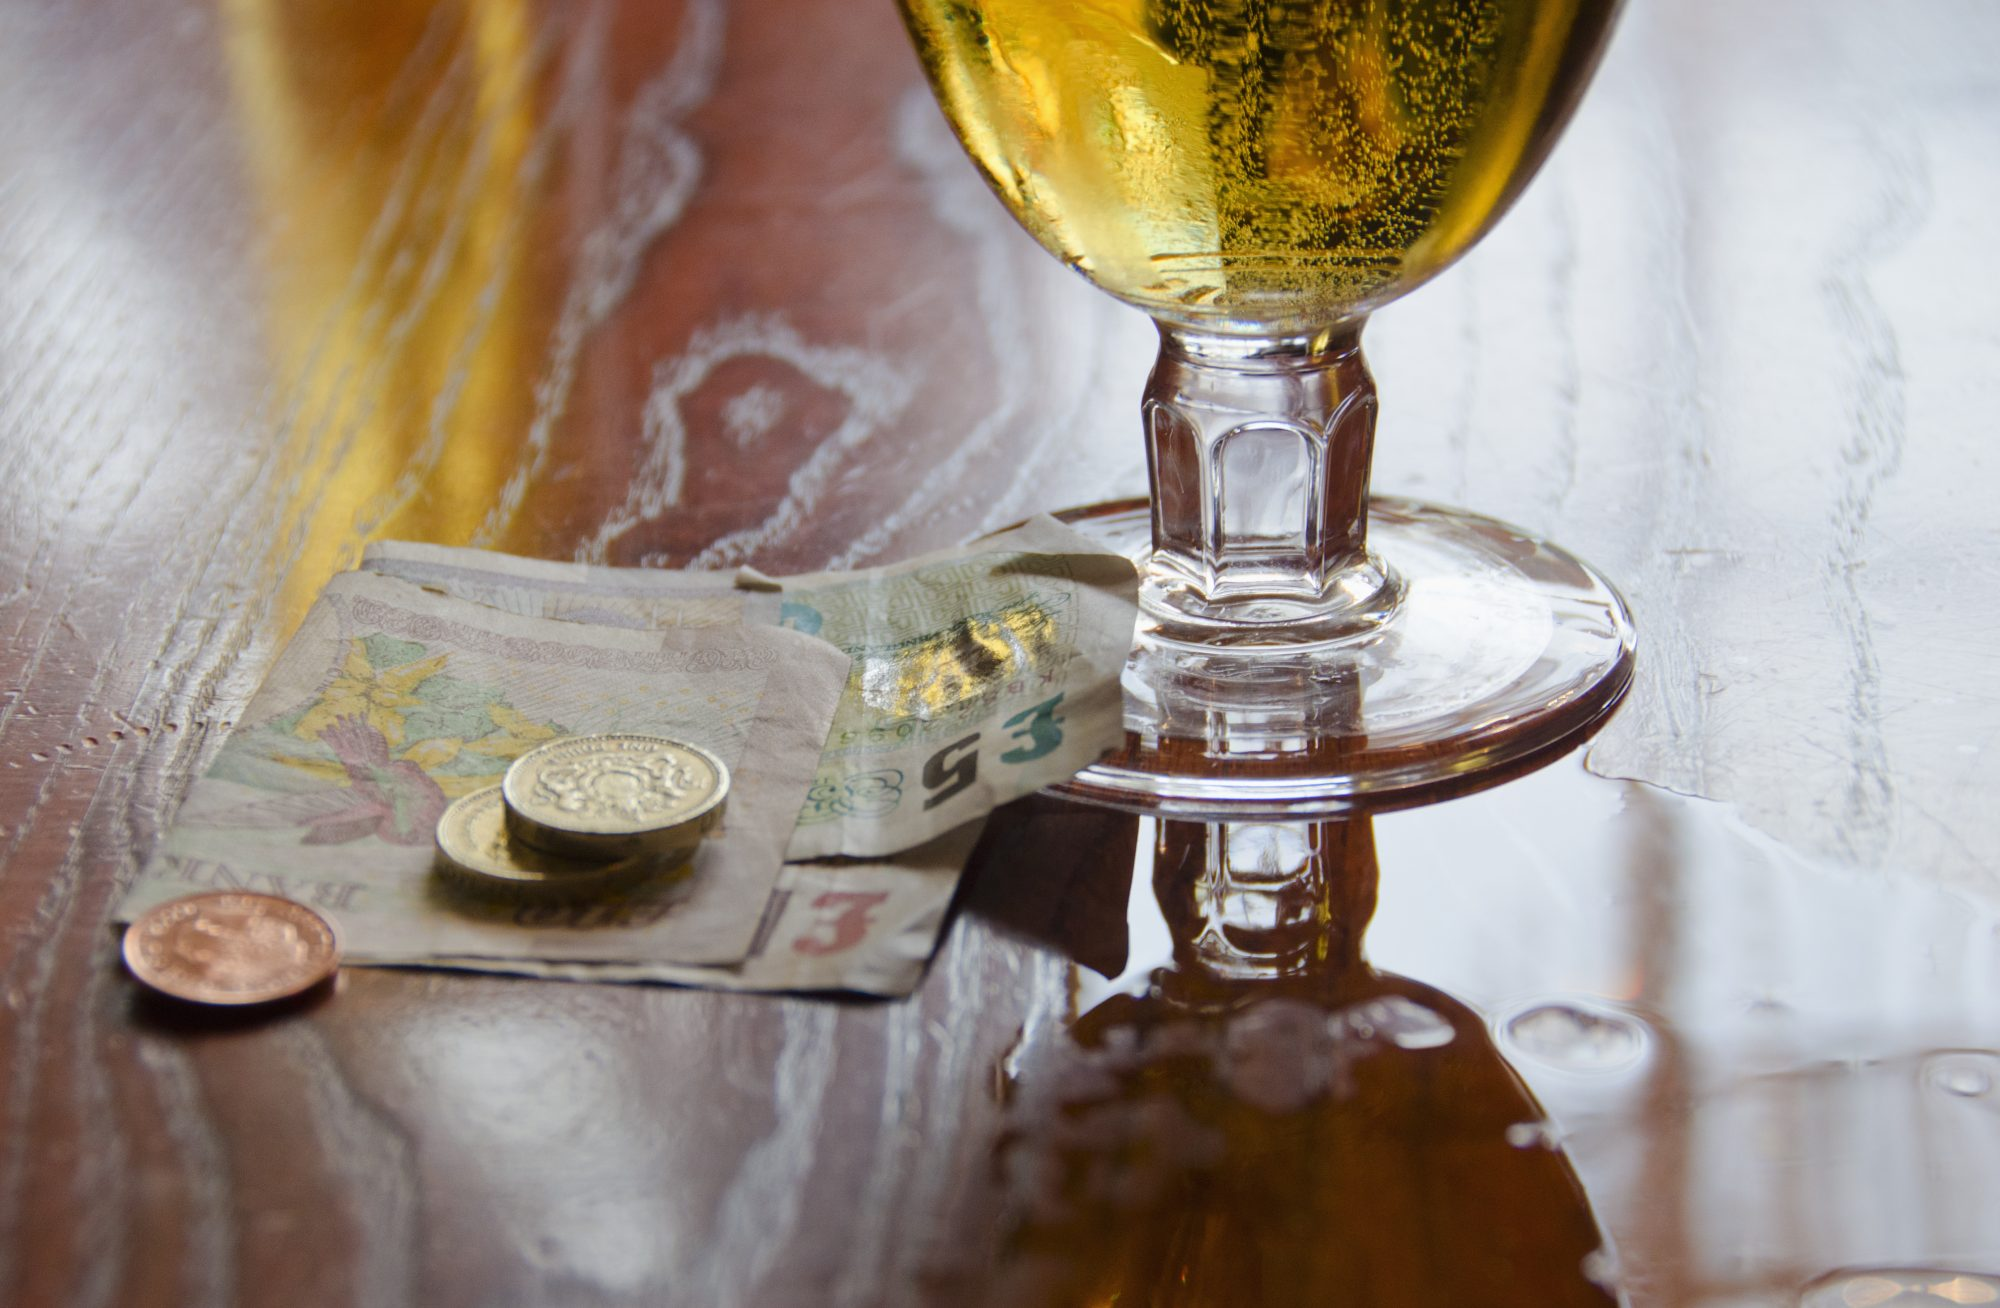 United Kingdom, Bristol, british currency and beer on table